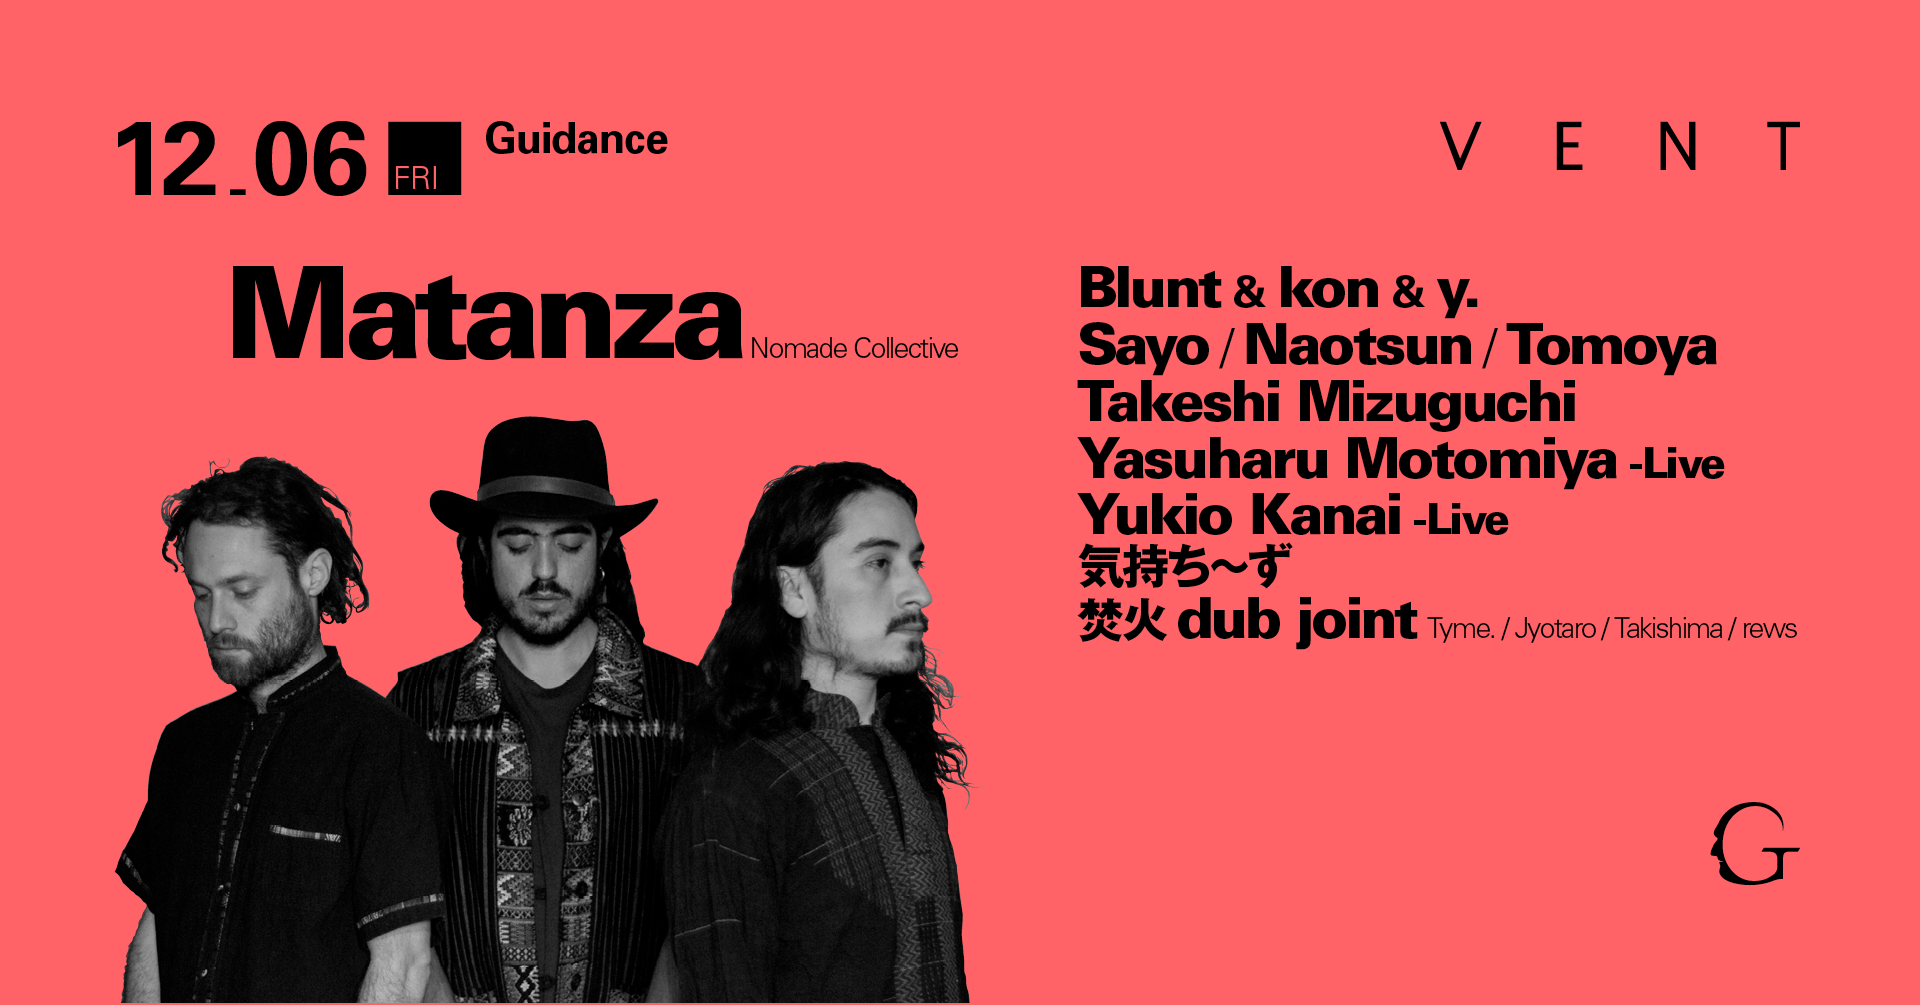 Matanza at Guidance